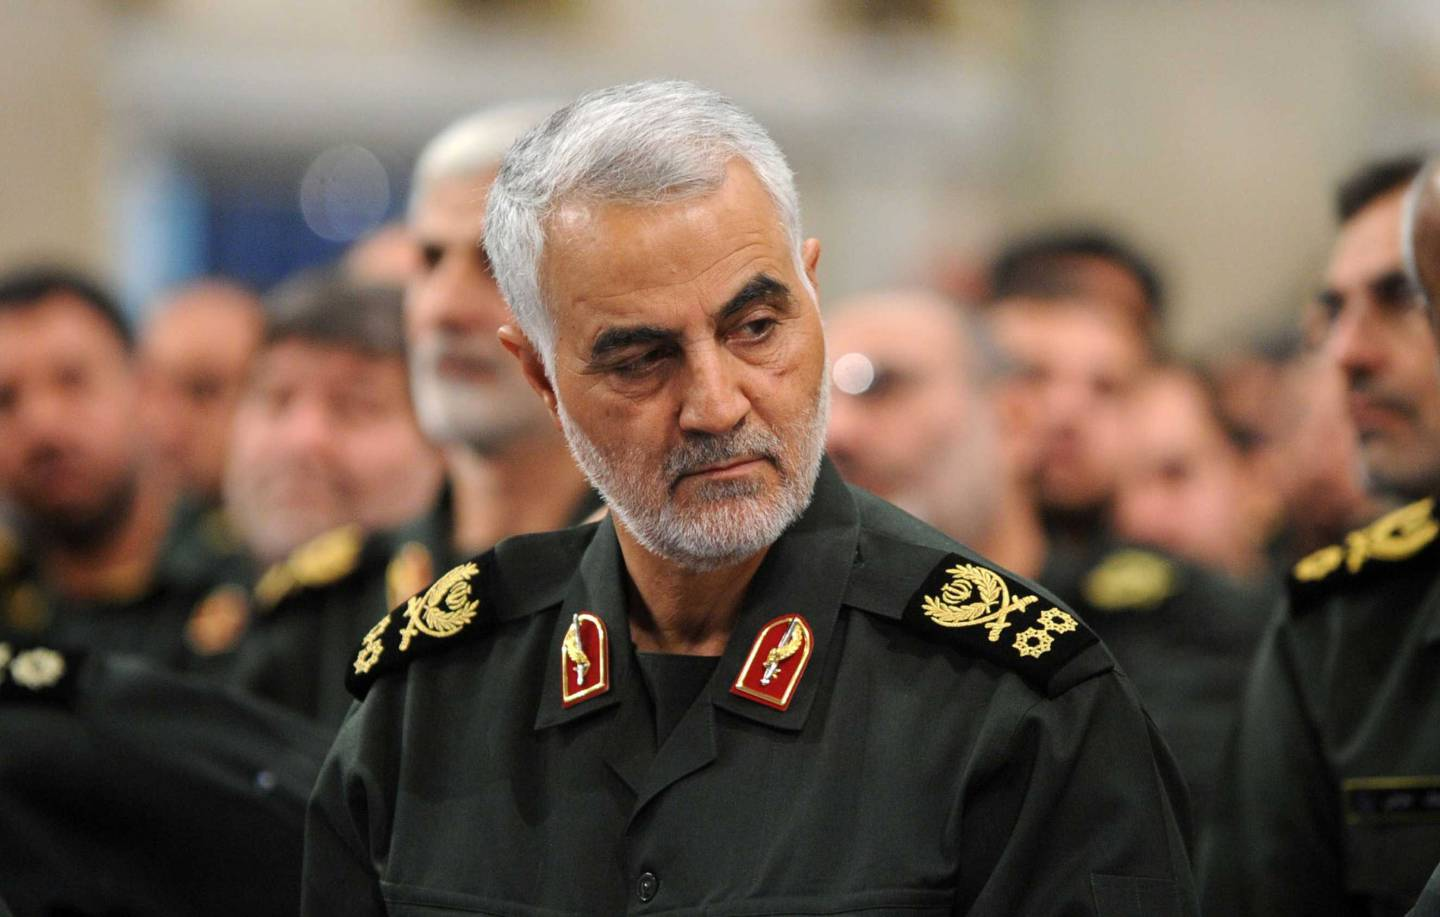 Prominent Iranian General Wounded In Syria's Daraa Province - Unconfirmed